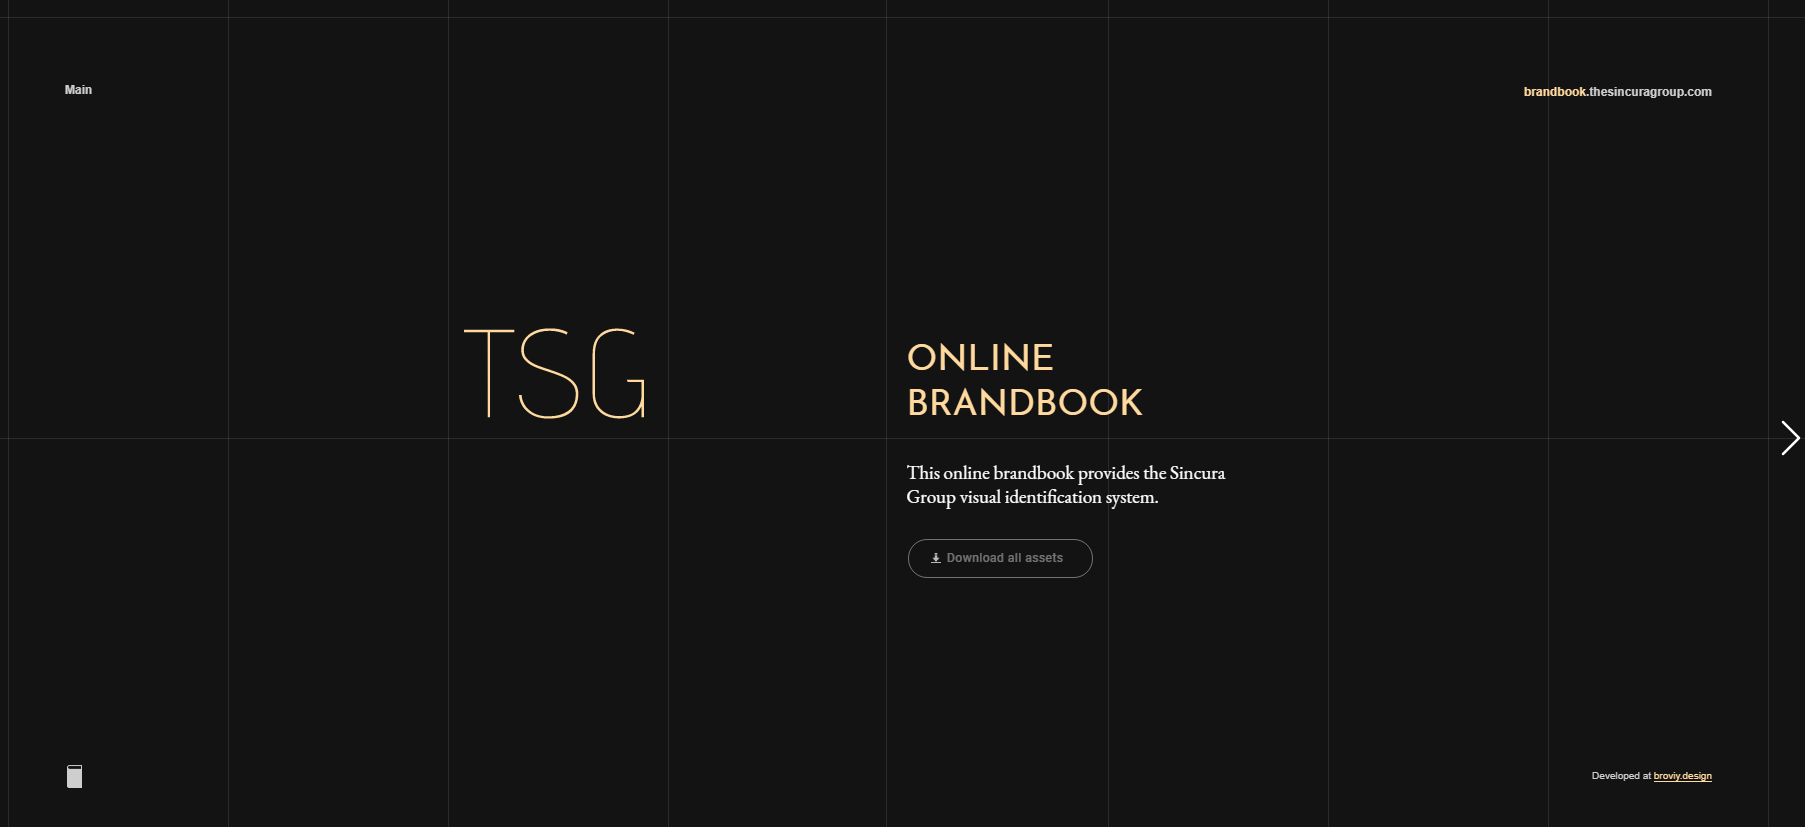 sincura concierge branding books